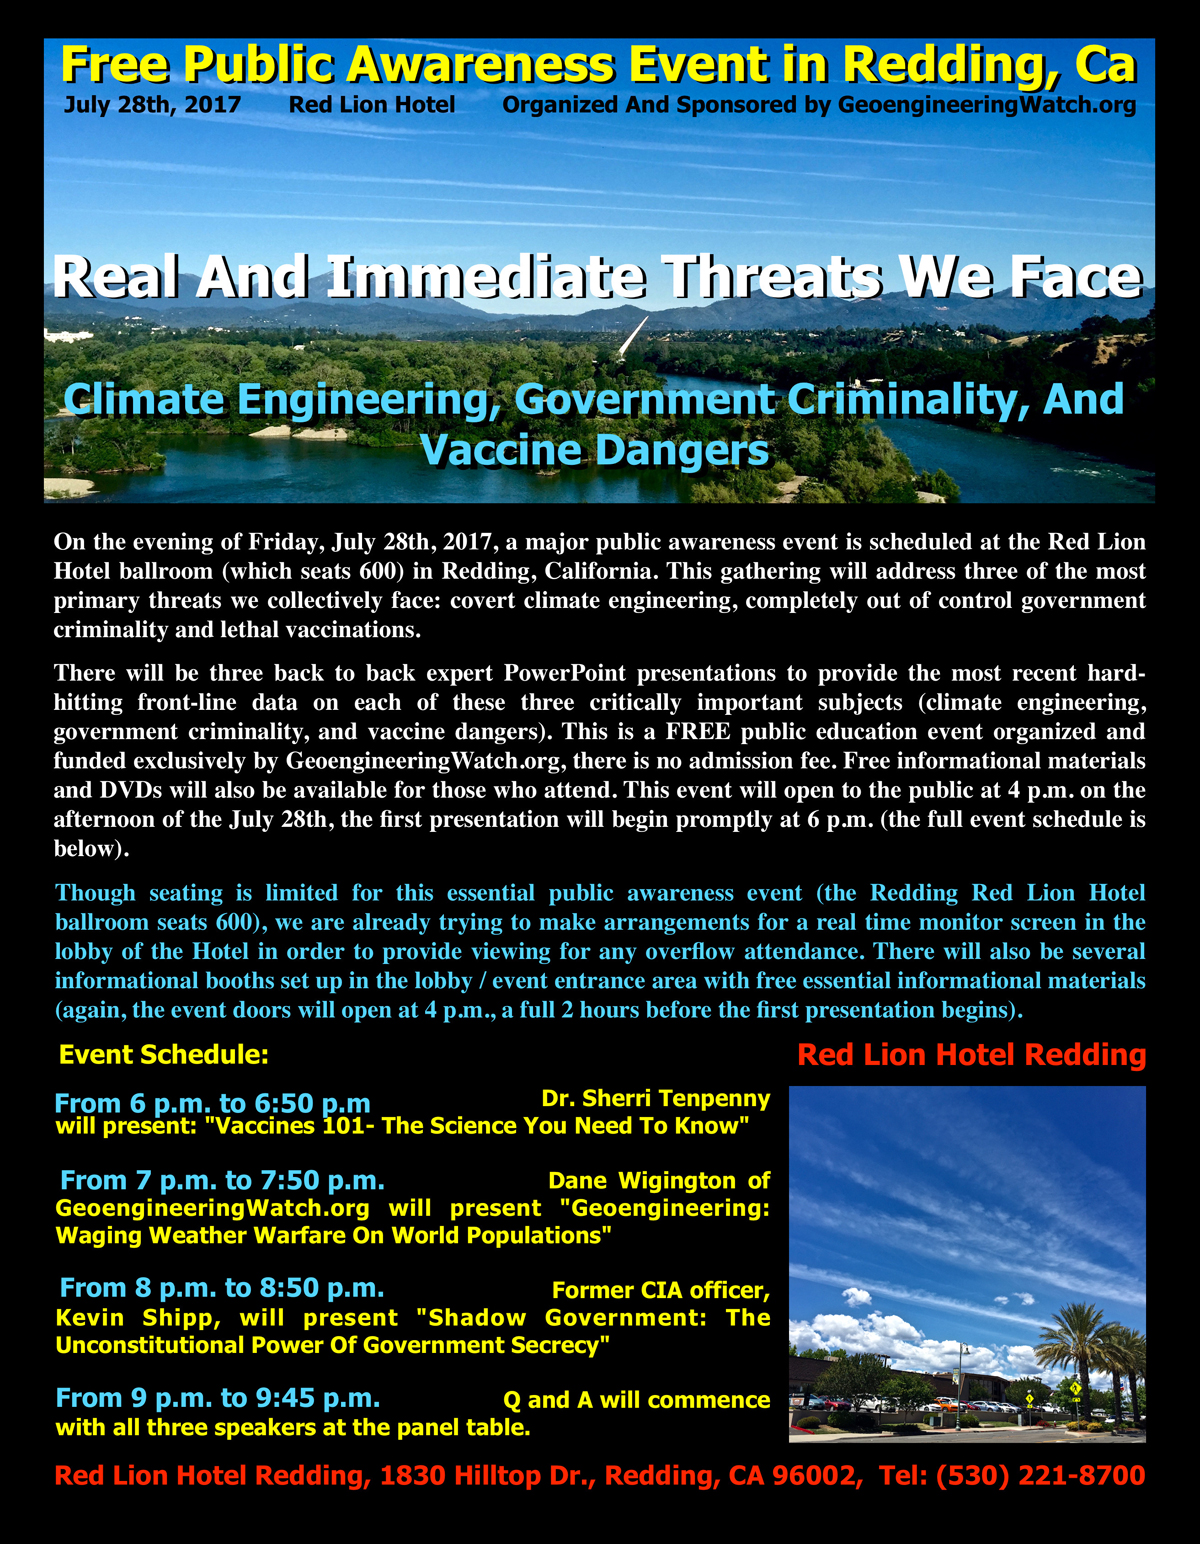 Climate Engineering, Government Criminality, And Vaccine Dangers: Major Northern California Event